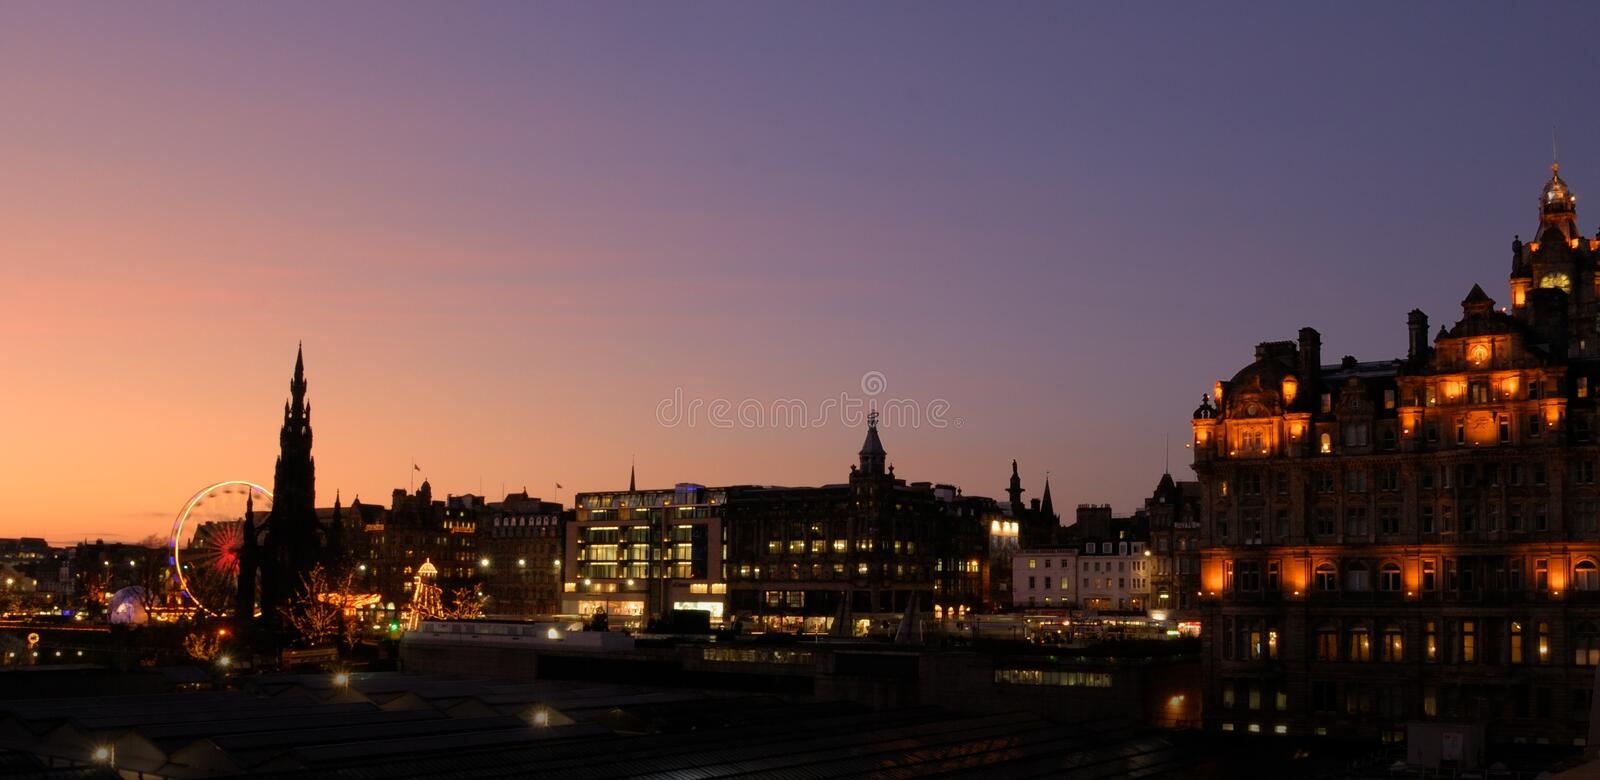 Edinburgh Christmas panorama royalty free stock photo